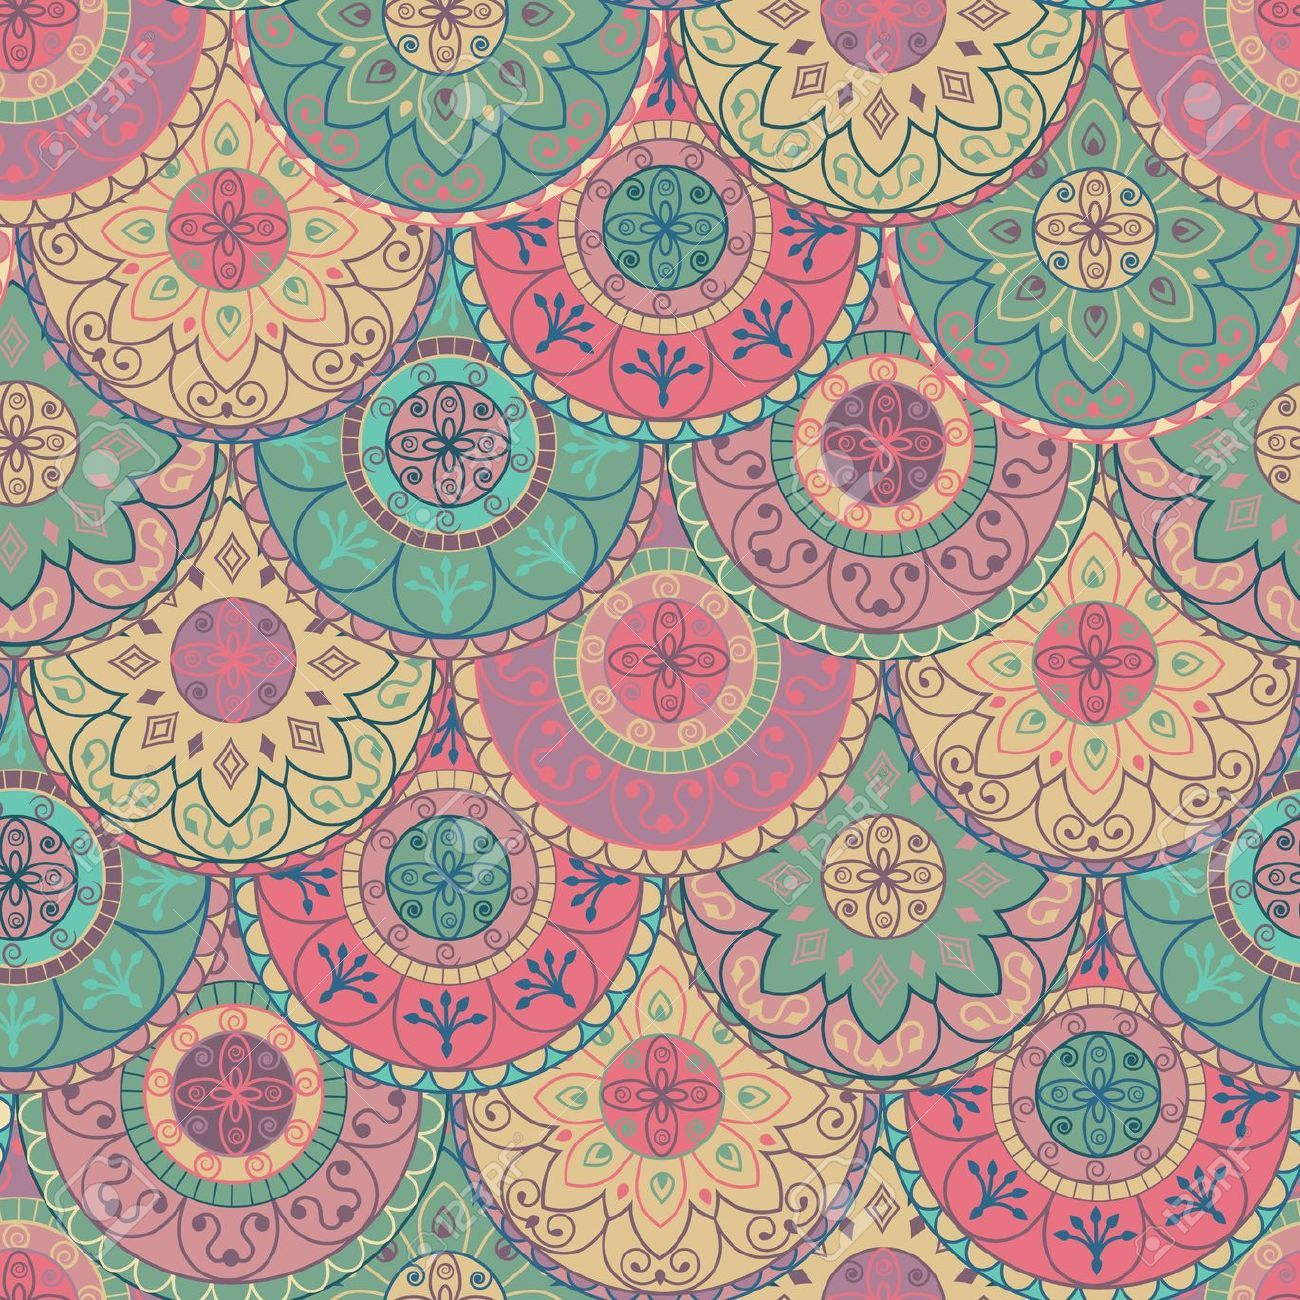 Pink Vintage Wallpaper - Google Search